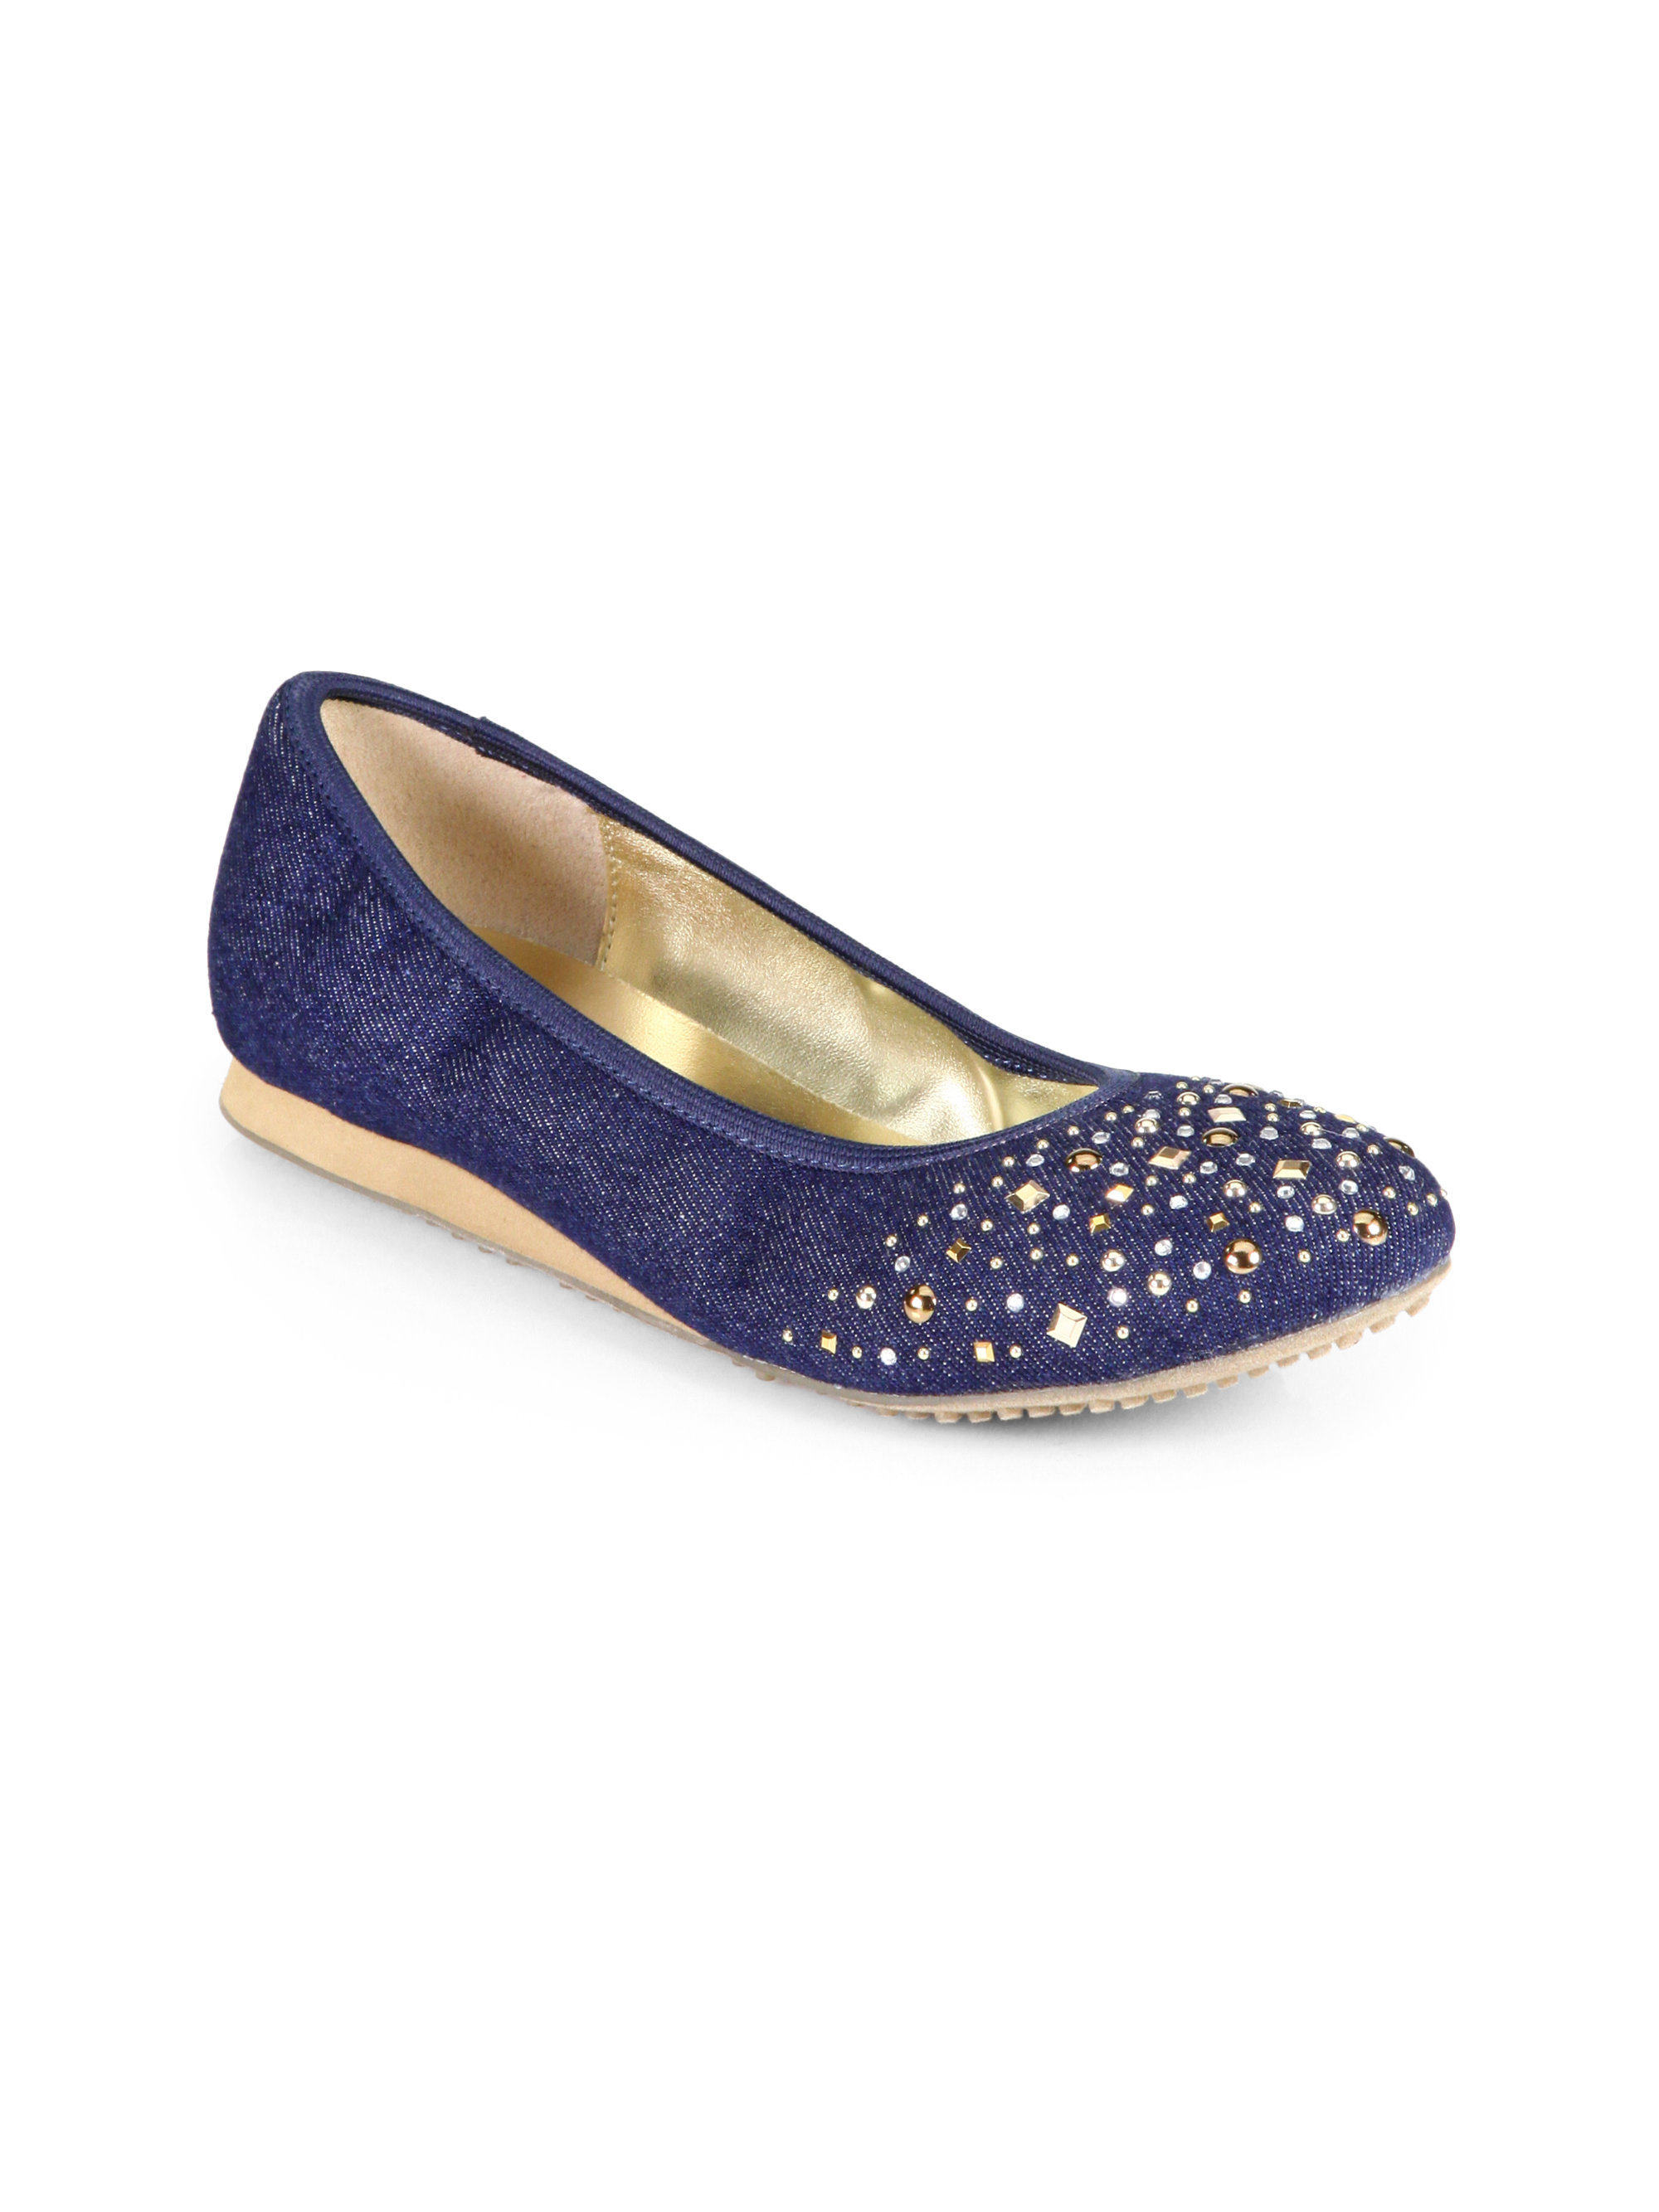 Shop eBay for great deals on Blue Flats Shoes for Girls. You'll find new or used products in Blue Flats Shoes for Girls on eBay. Free shipping on selected items.